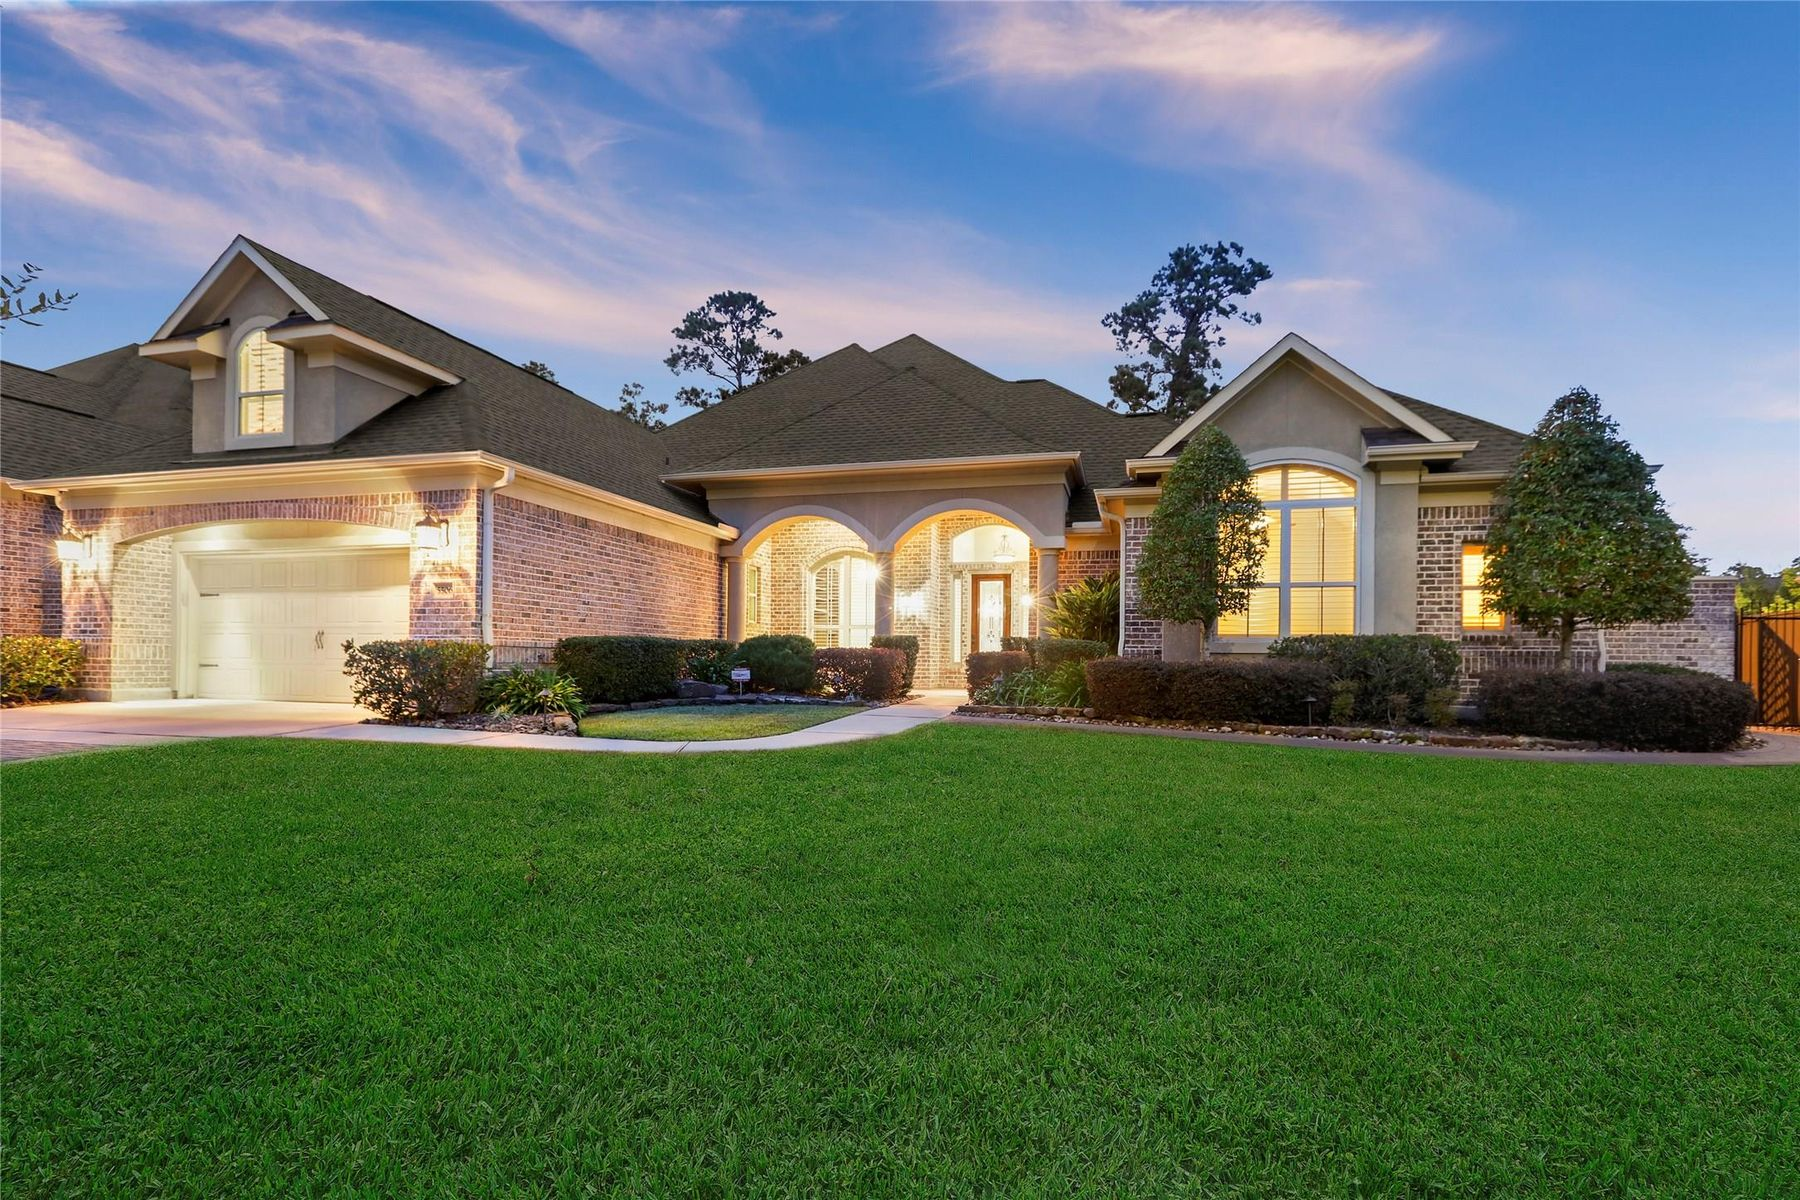 Single Family Homes for Sale at 5506 August Hill Drive Kingwood, Texas 77345 United States